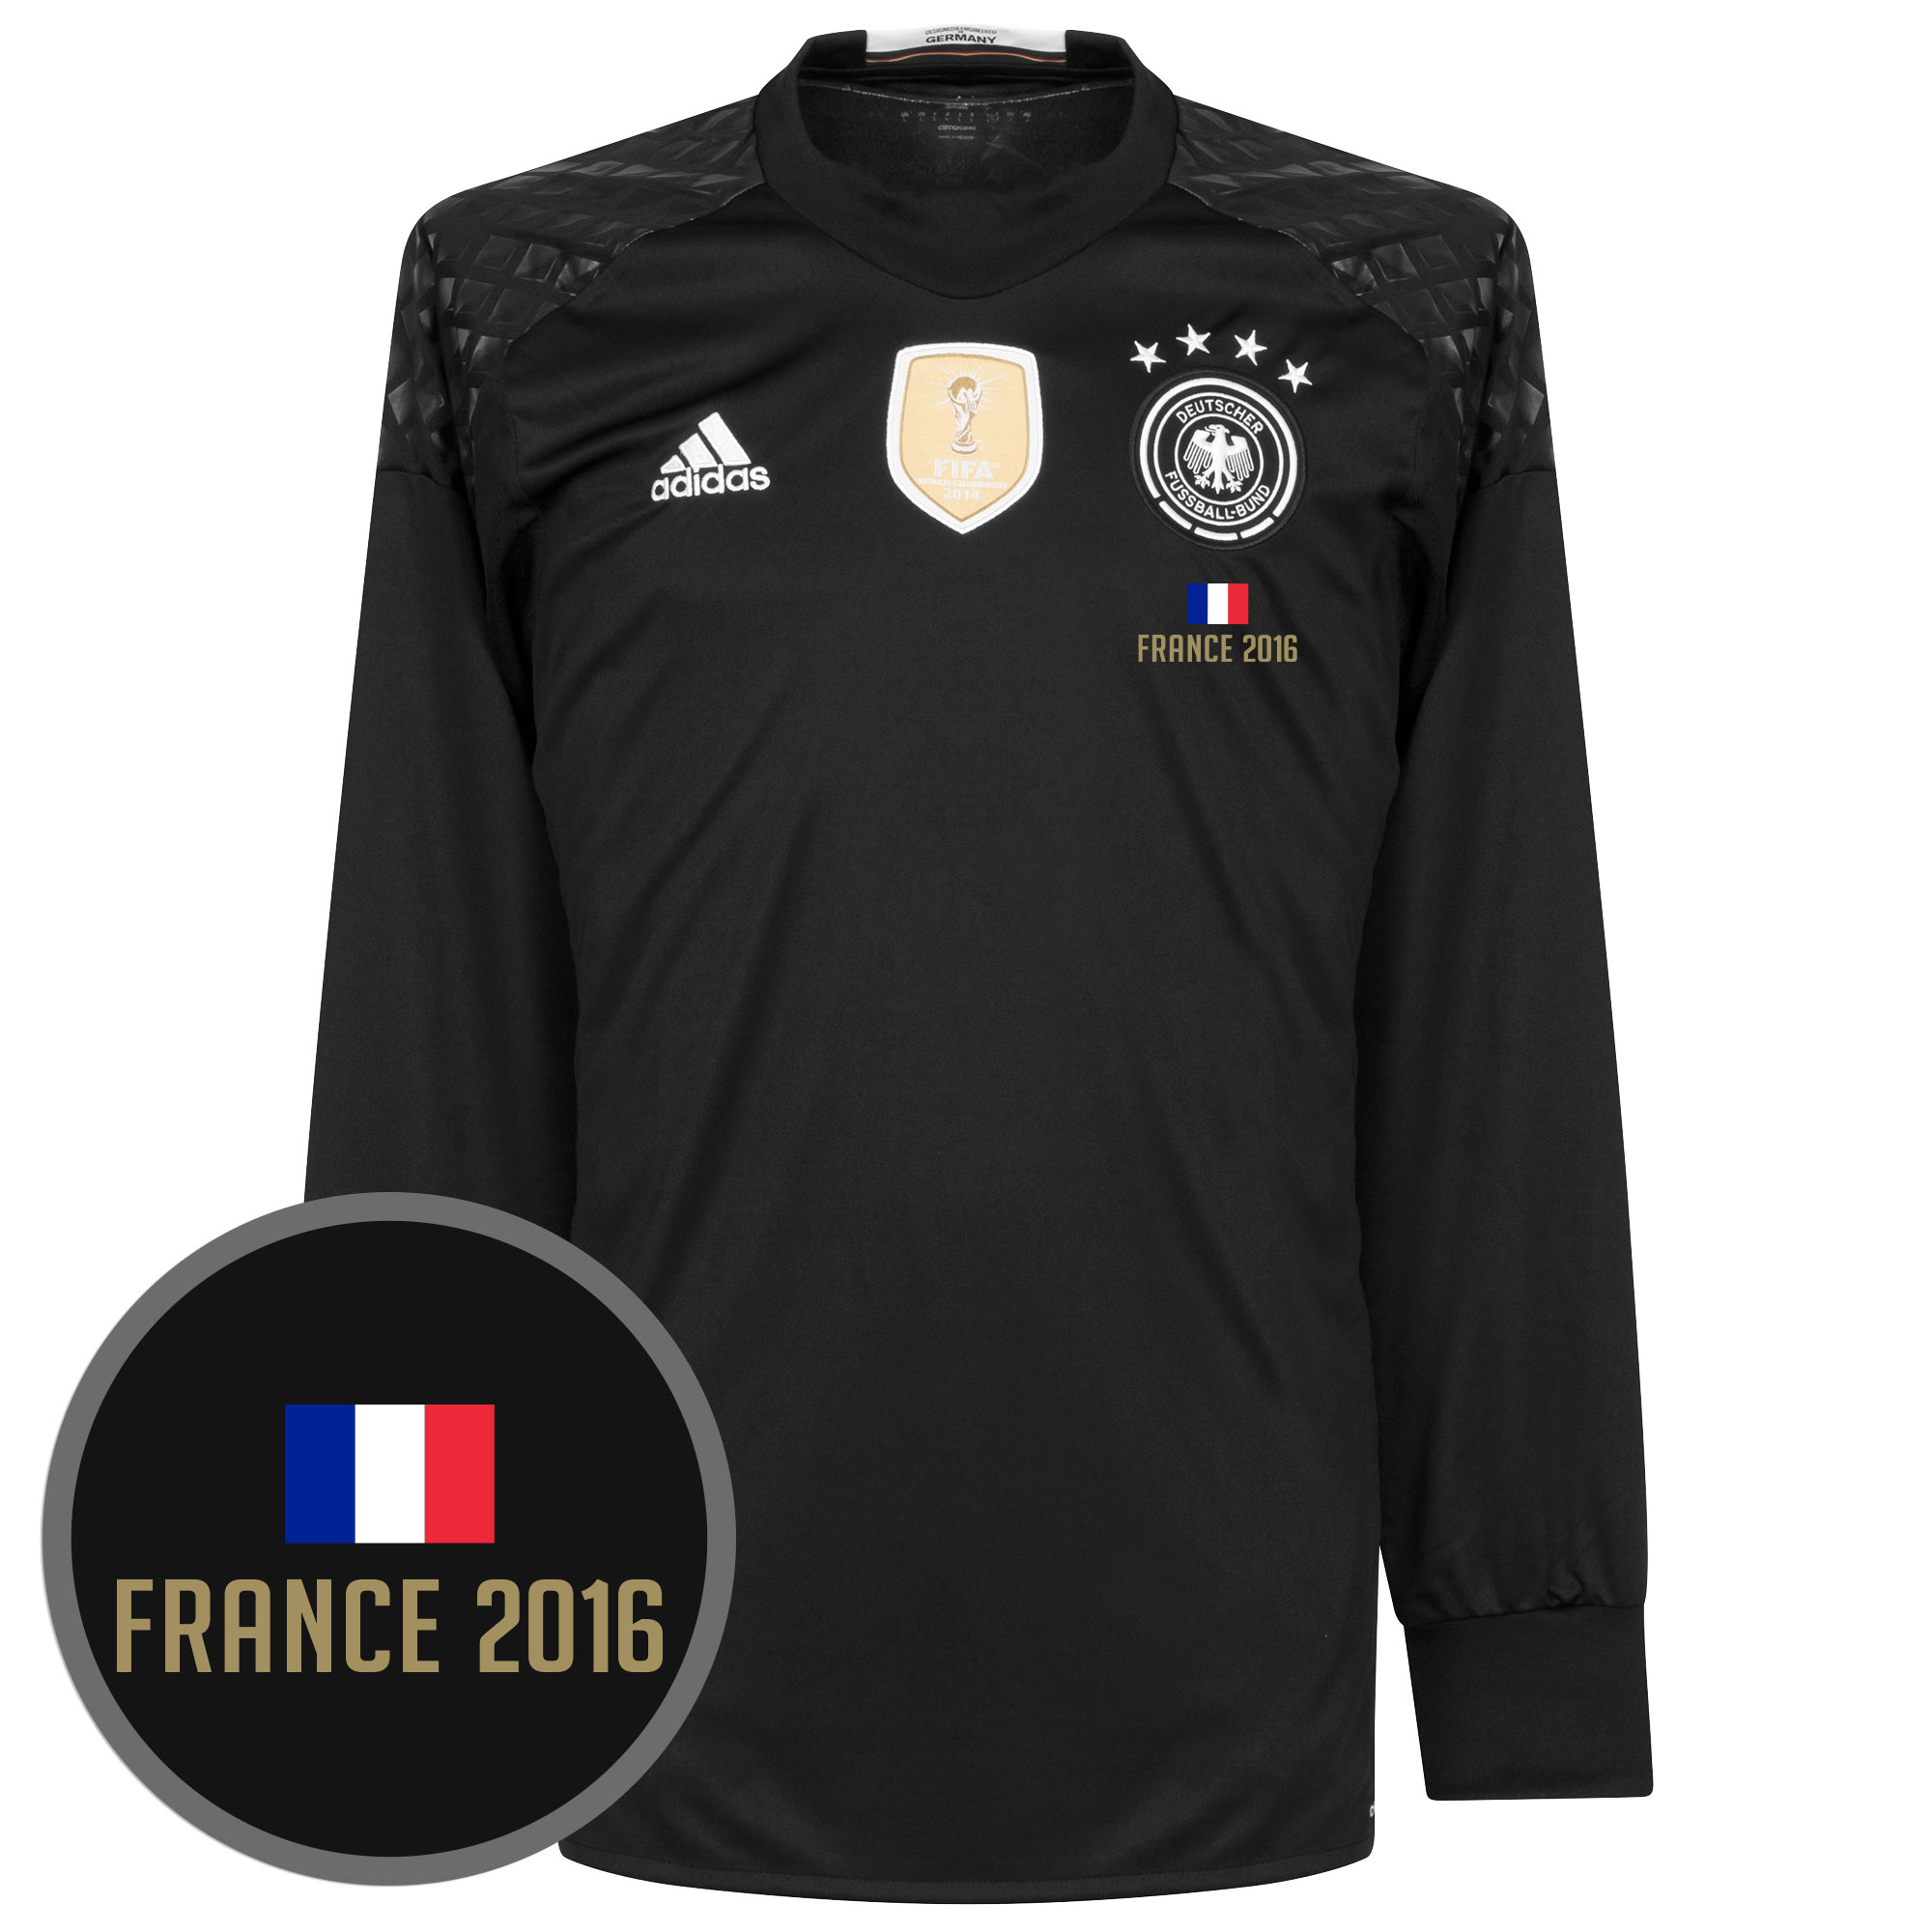 Germany Home Goalkeeper Jersey 2016 / 2017 + France 2016 Transfer - 50